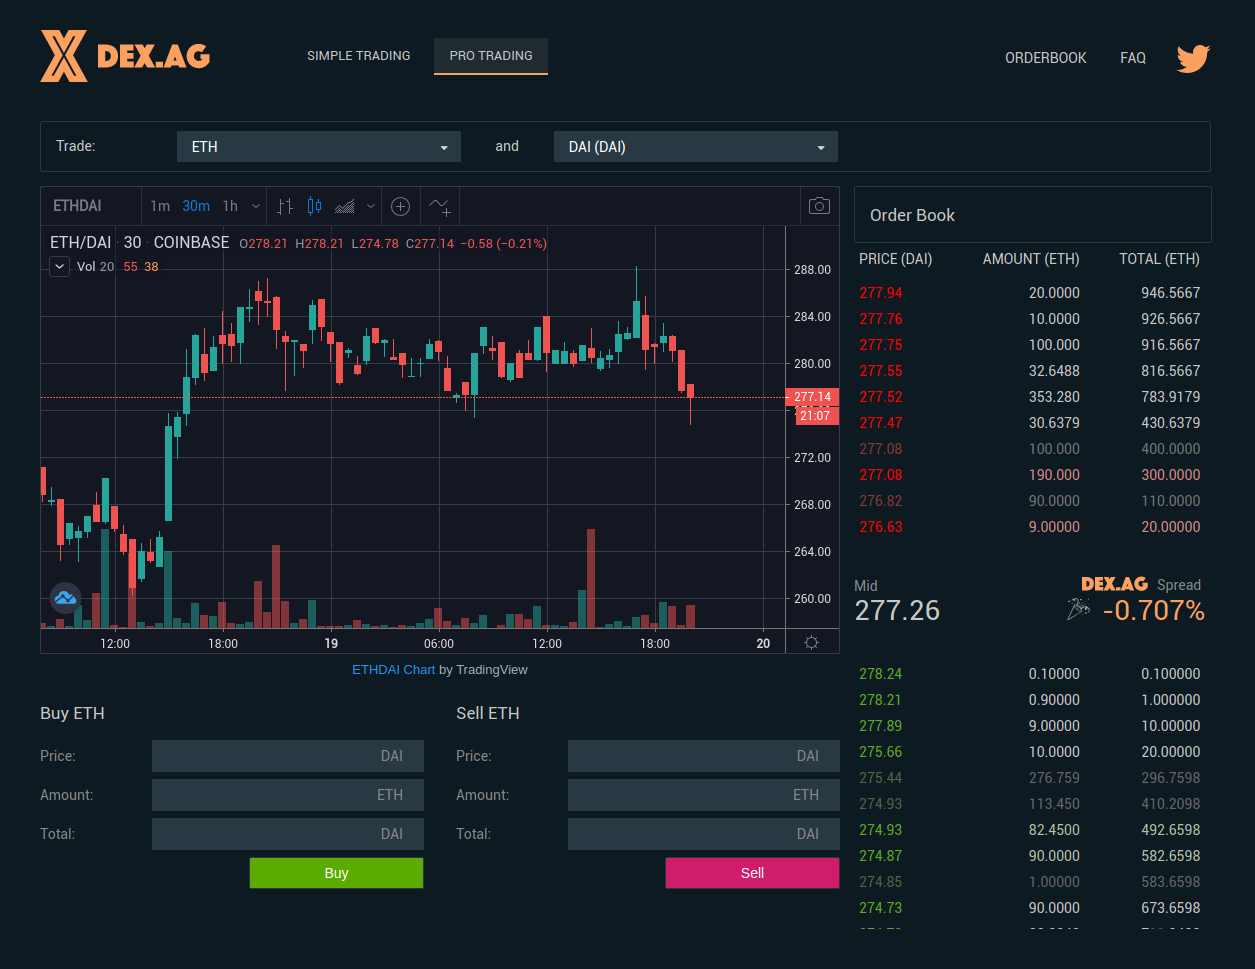 DEX.AG Pro interface